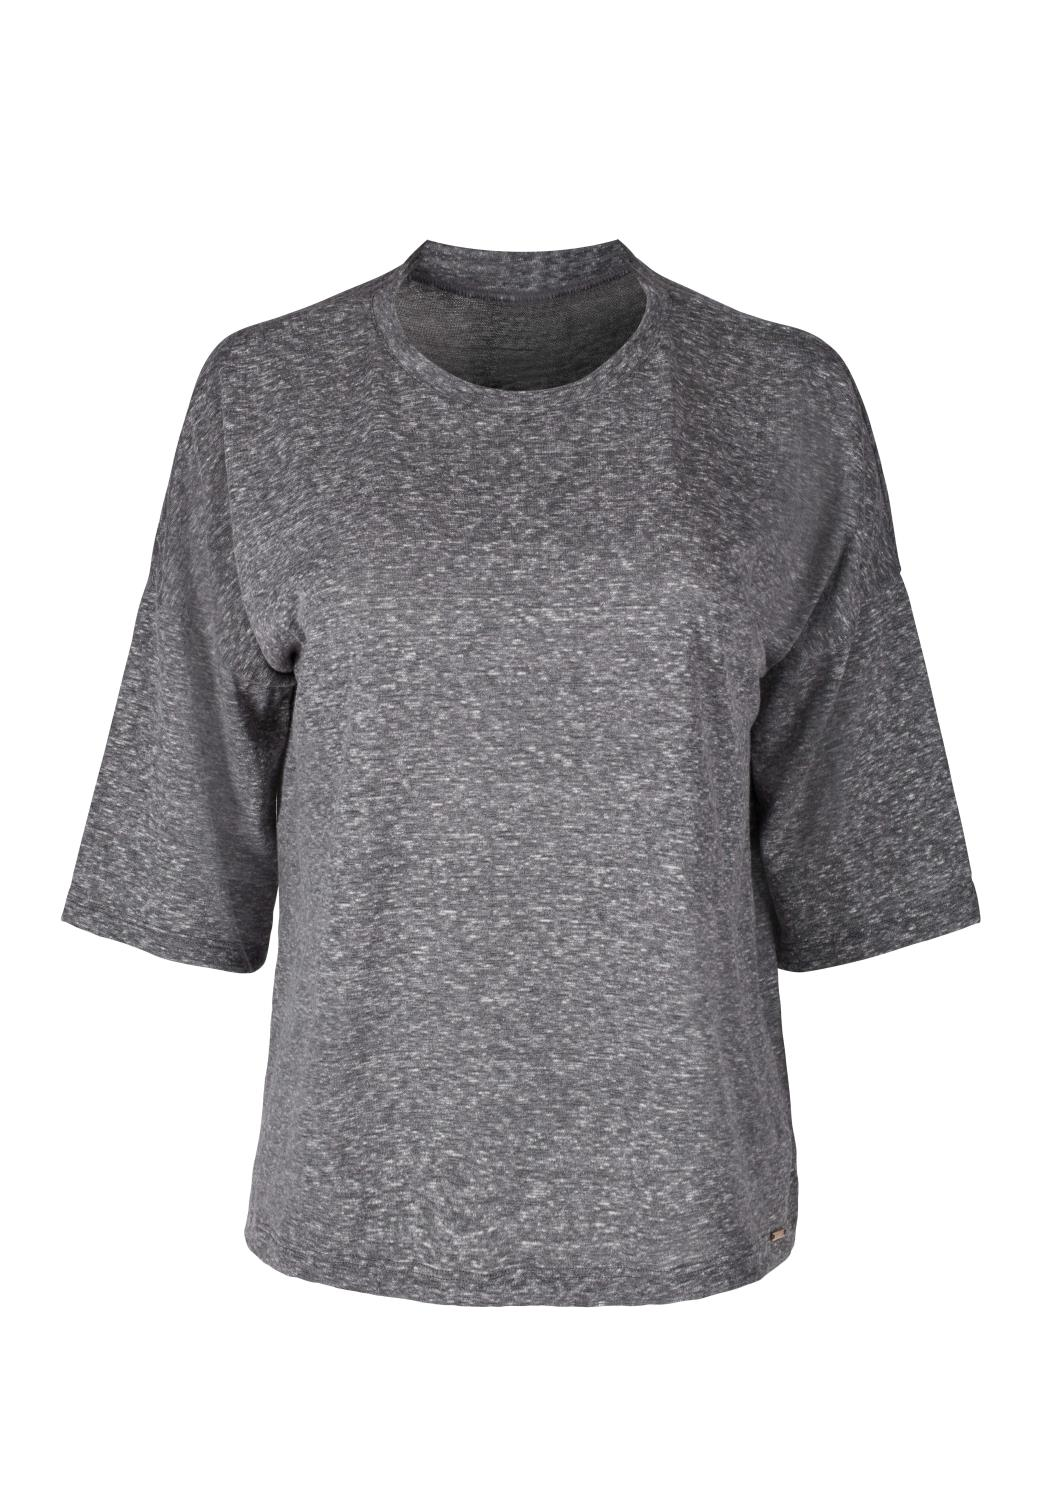 Skiny L. shirt s/sl, Skiny loungwear collection, gray flame melange